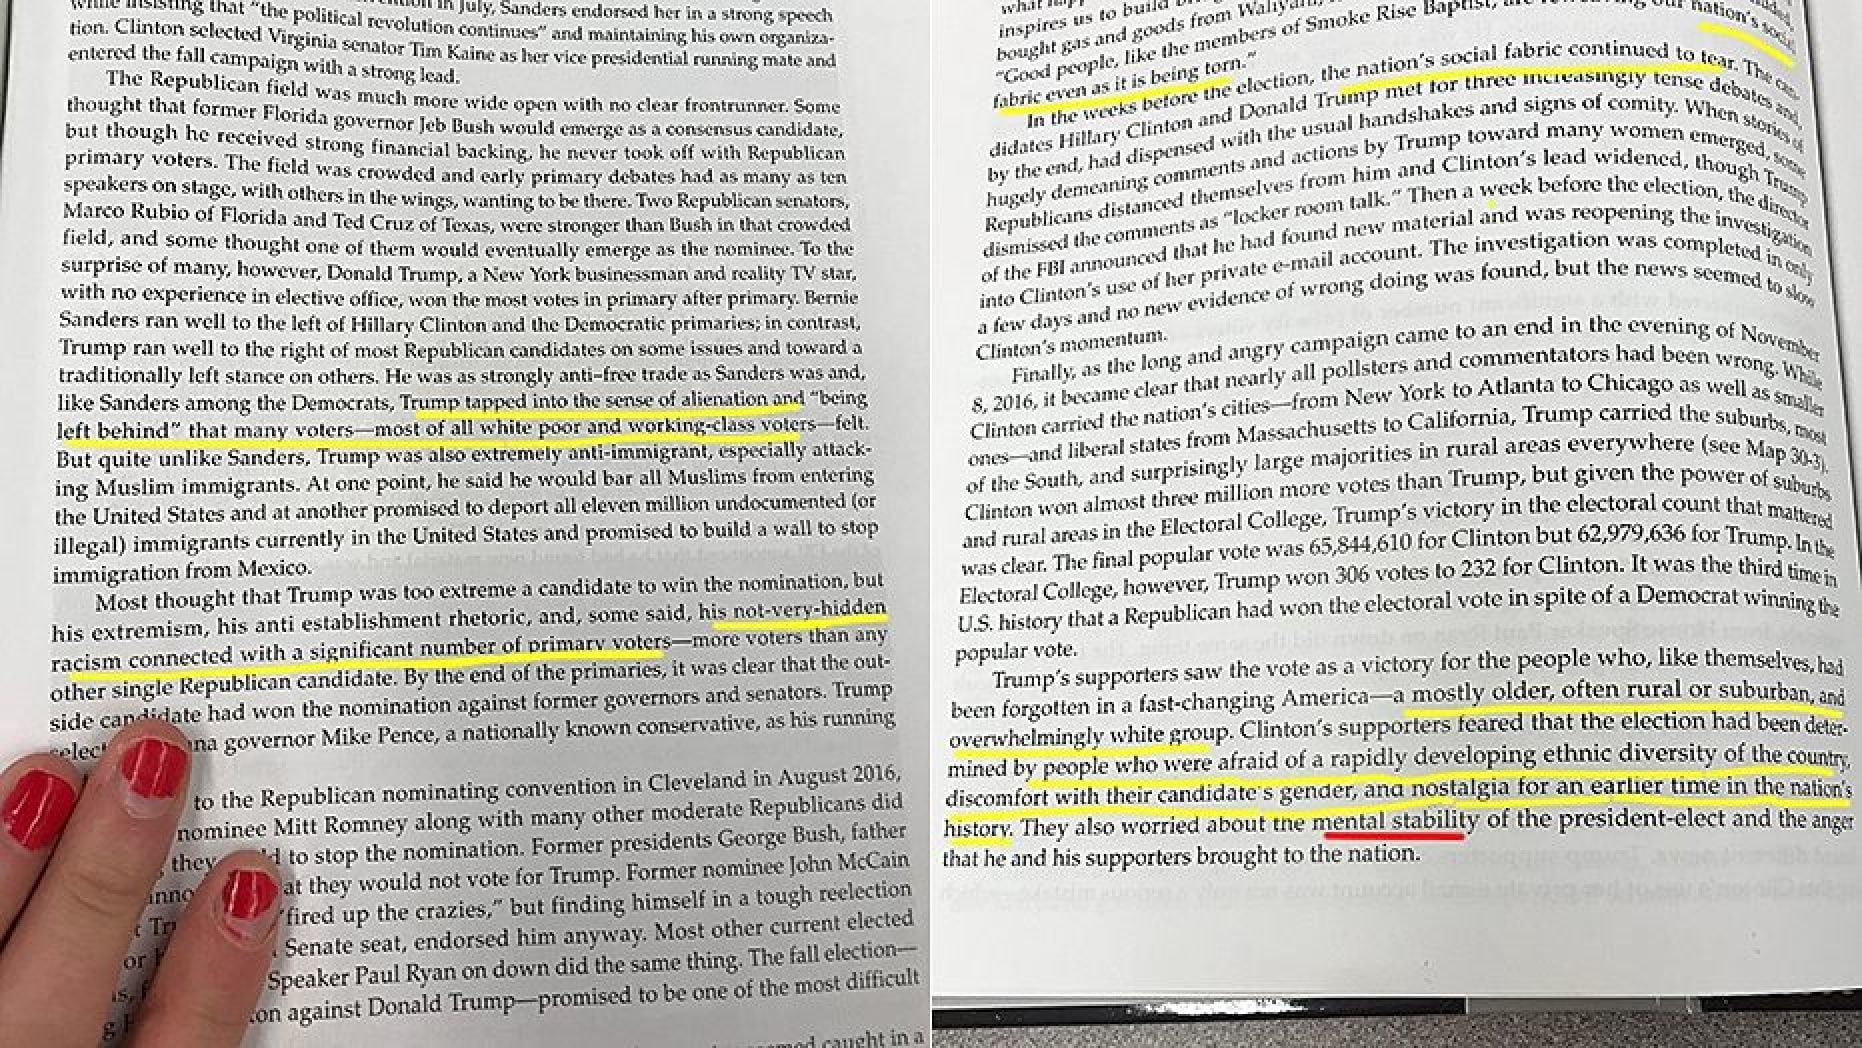 New High School Textbook Describes Trump as Mentally Ill, Supporters as Racist